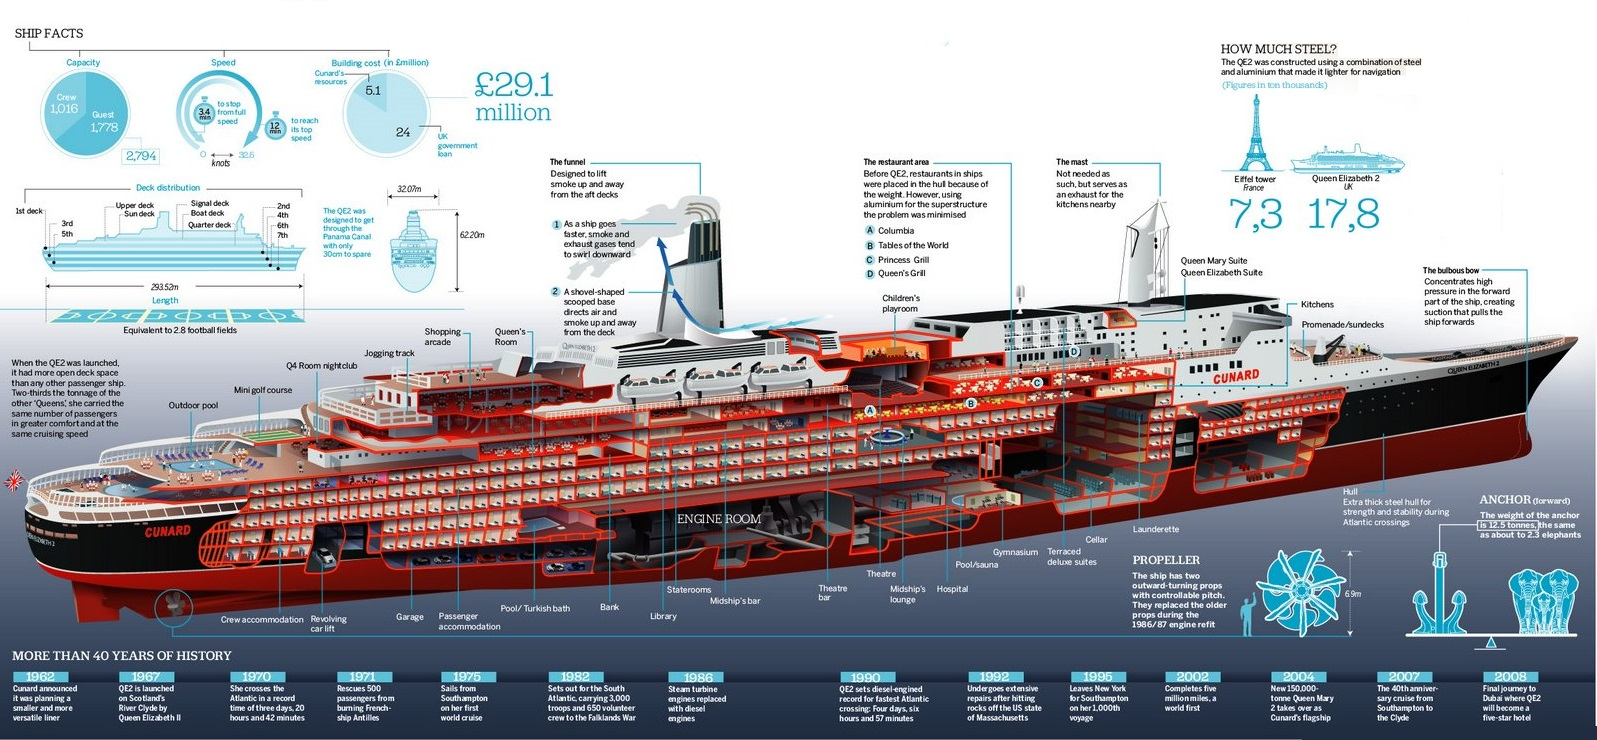 Cutaway drawing of QE2 following the penthouse suite additions of 1972 and prior to the re-engining of 1987.